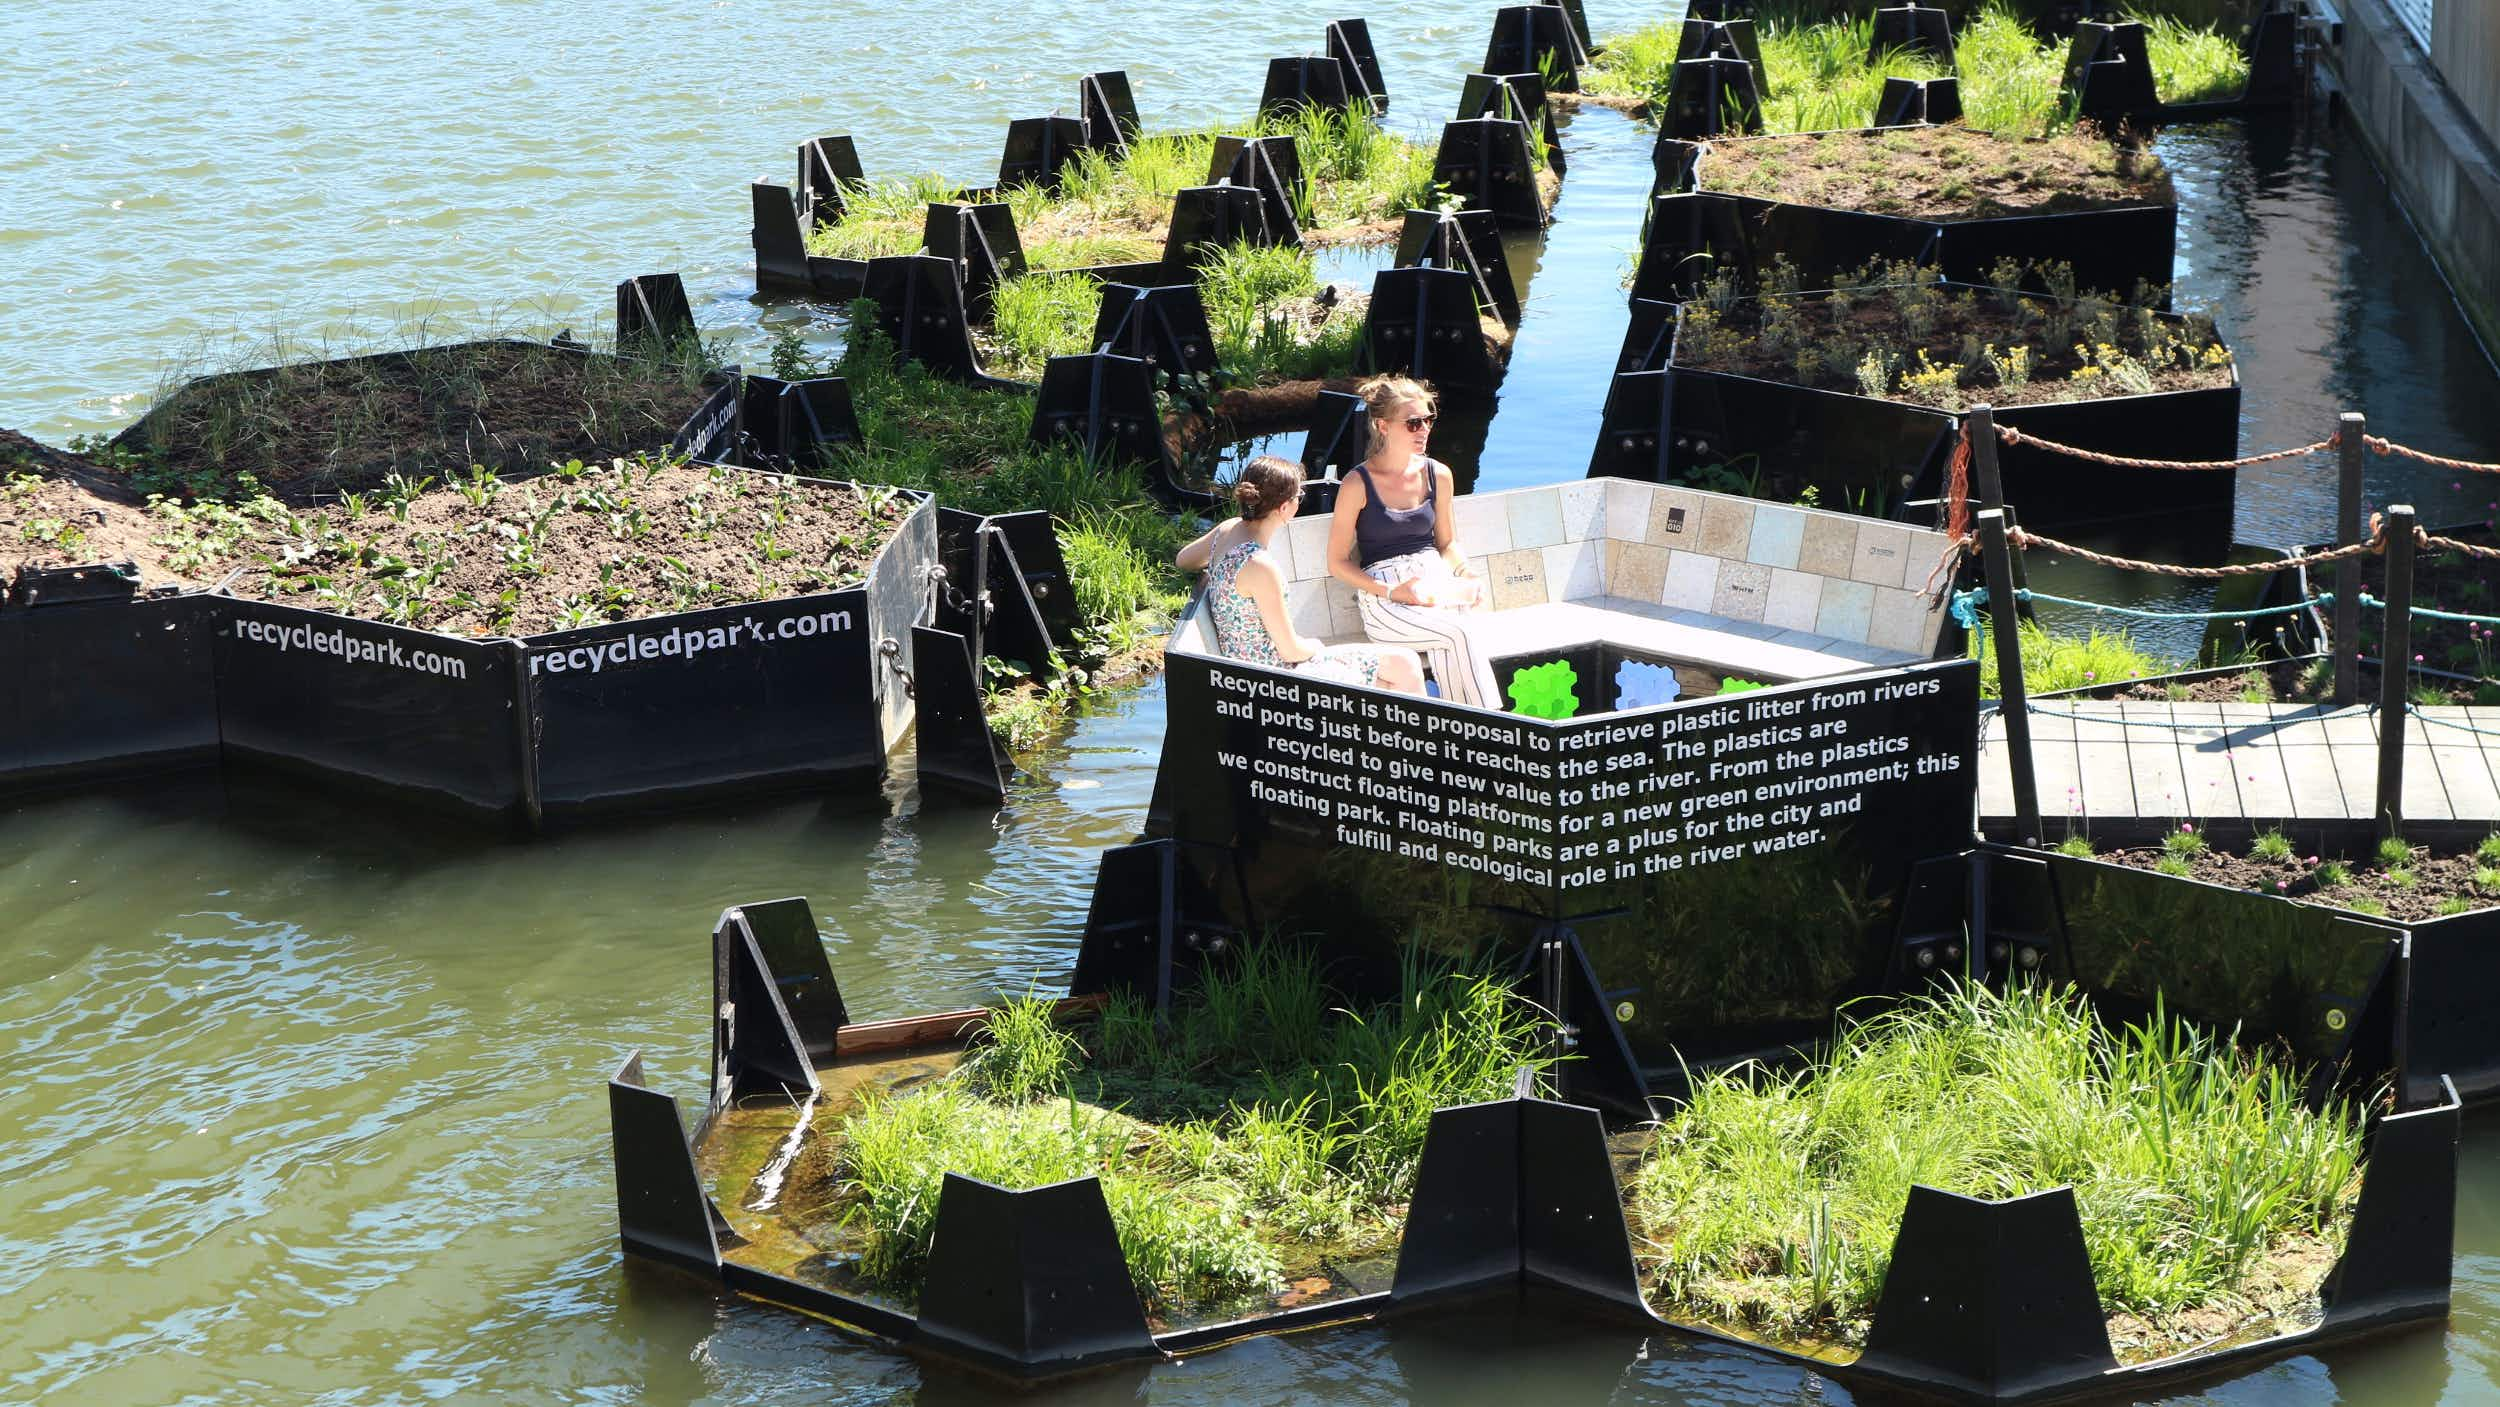 Visit Rotterdam's floating park made entirely from recycled waste